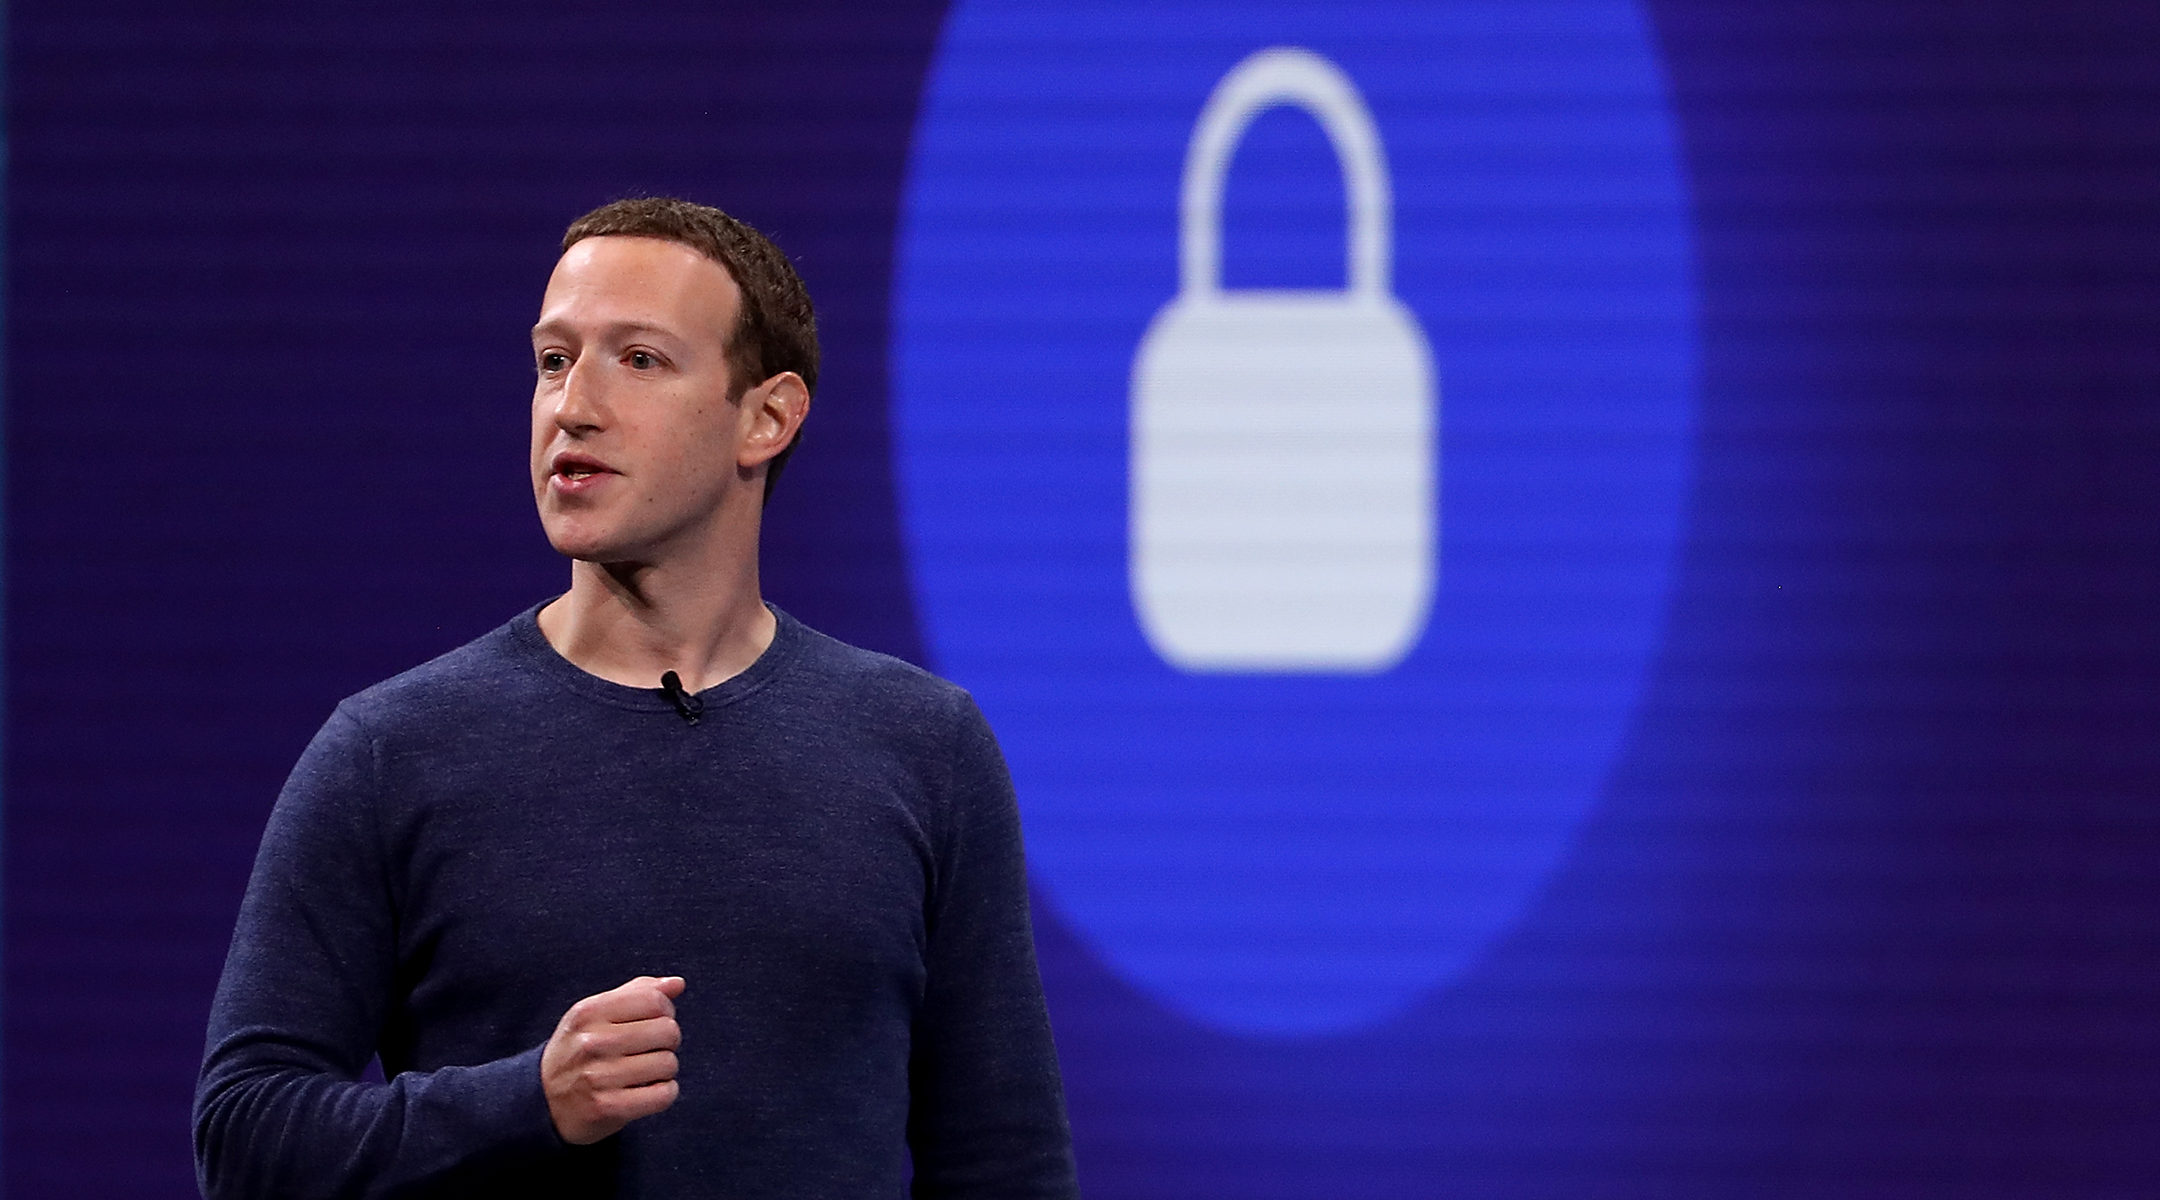 Facebook CEO Mark Zuckerberg speaks during the F8 Facebook Developers conference on May 1 in San Jose. (Photo/JTA-Getty Images-Justin Sullivan)